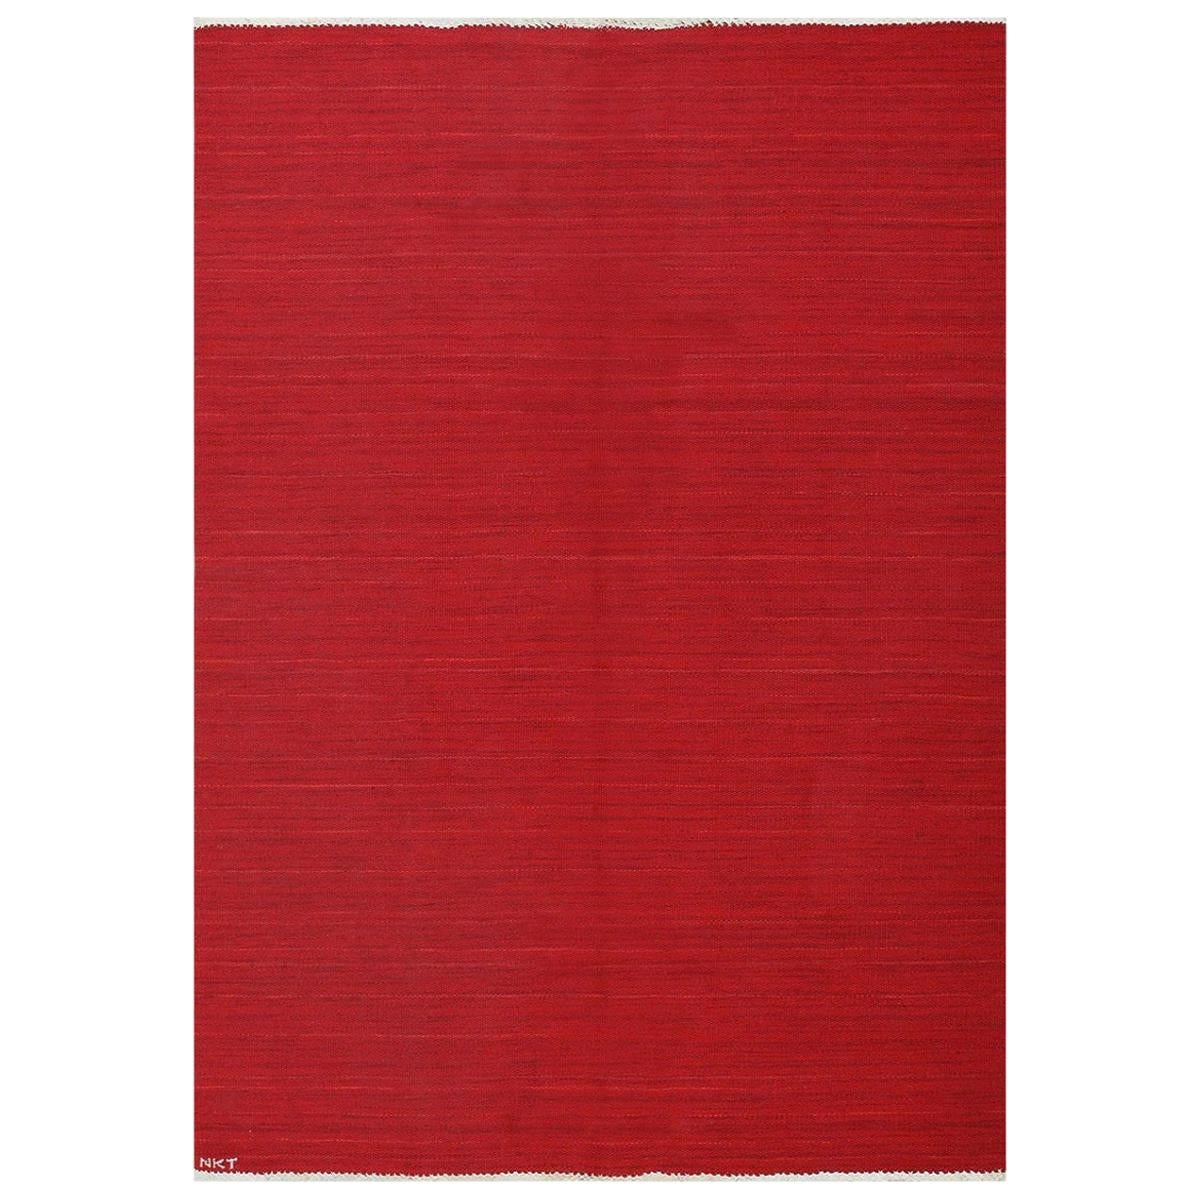 Mid-Century Red Swedish Kilim Signed Nkt. Size: 4 ft 2 in x 7 ft 5 in